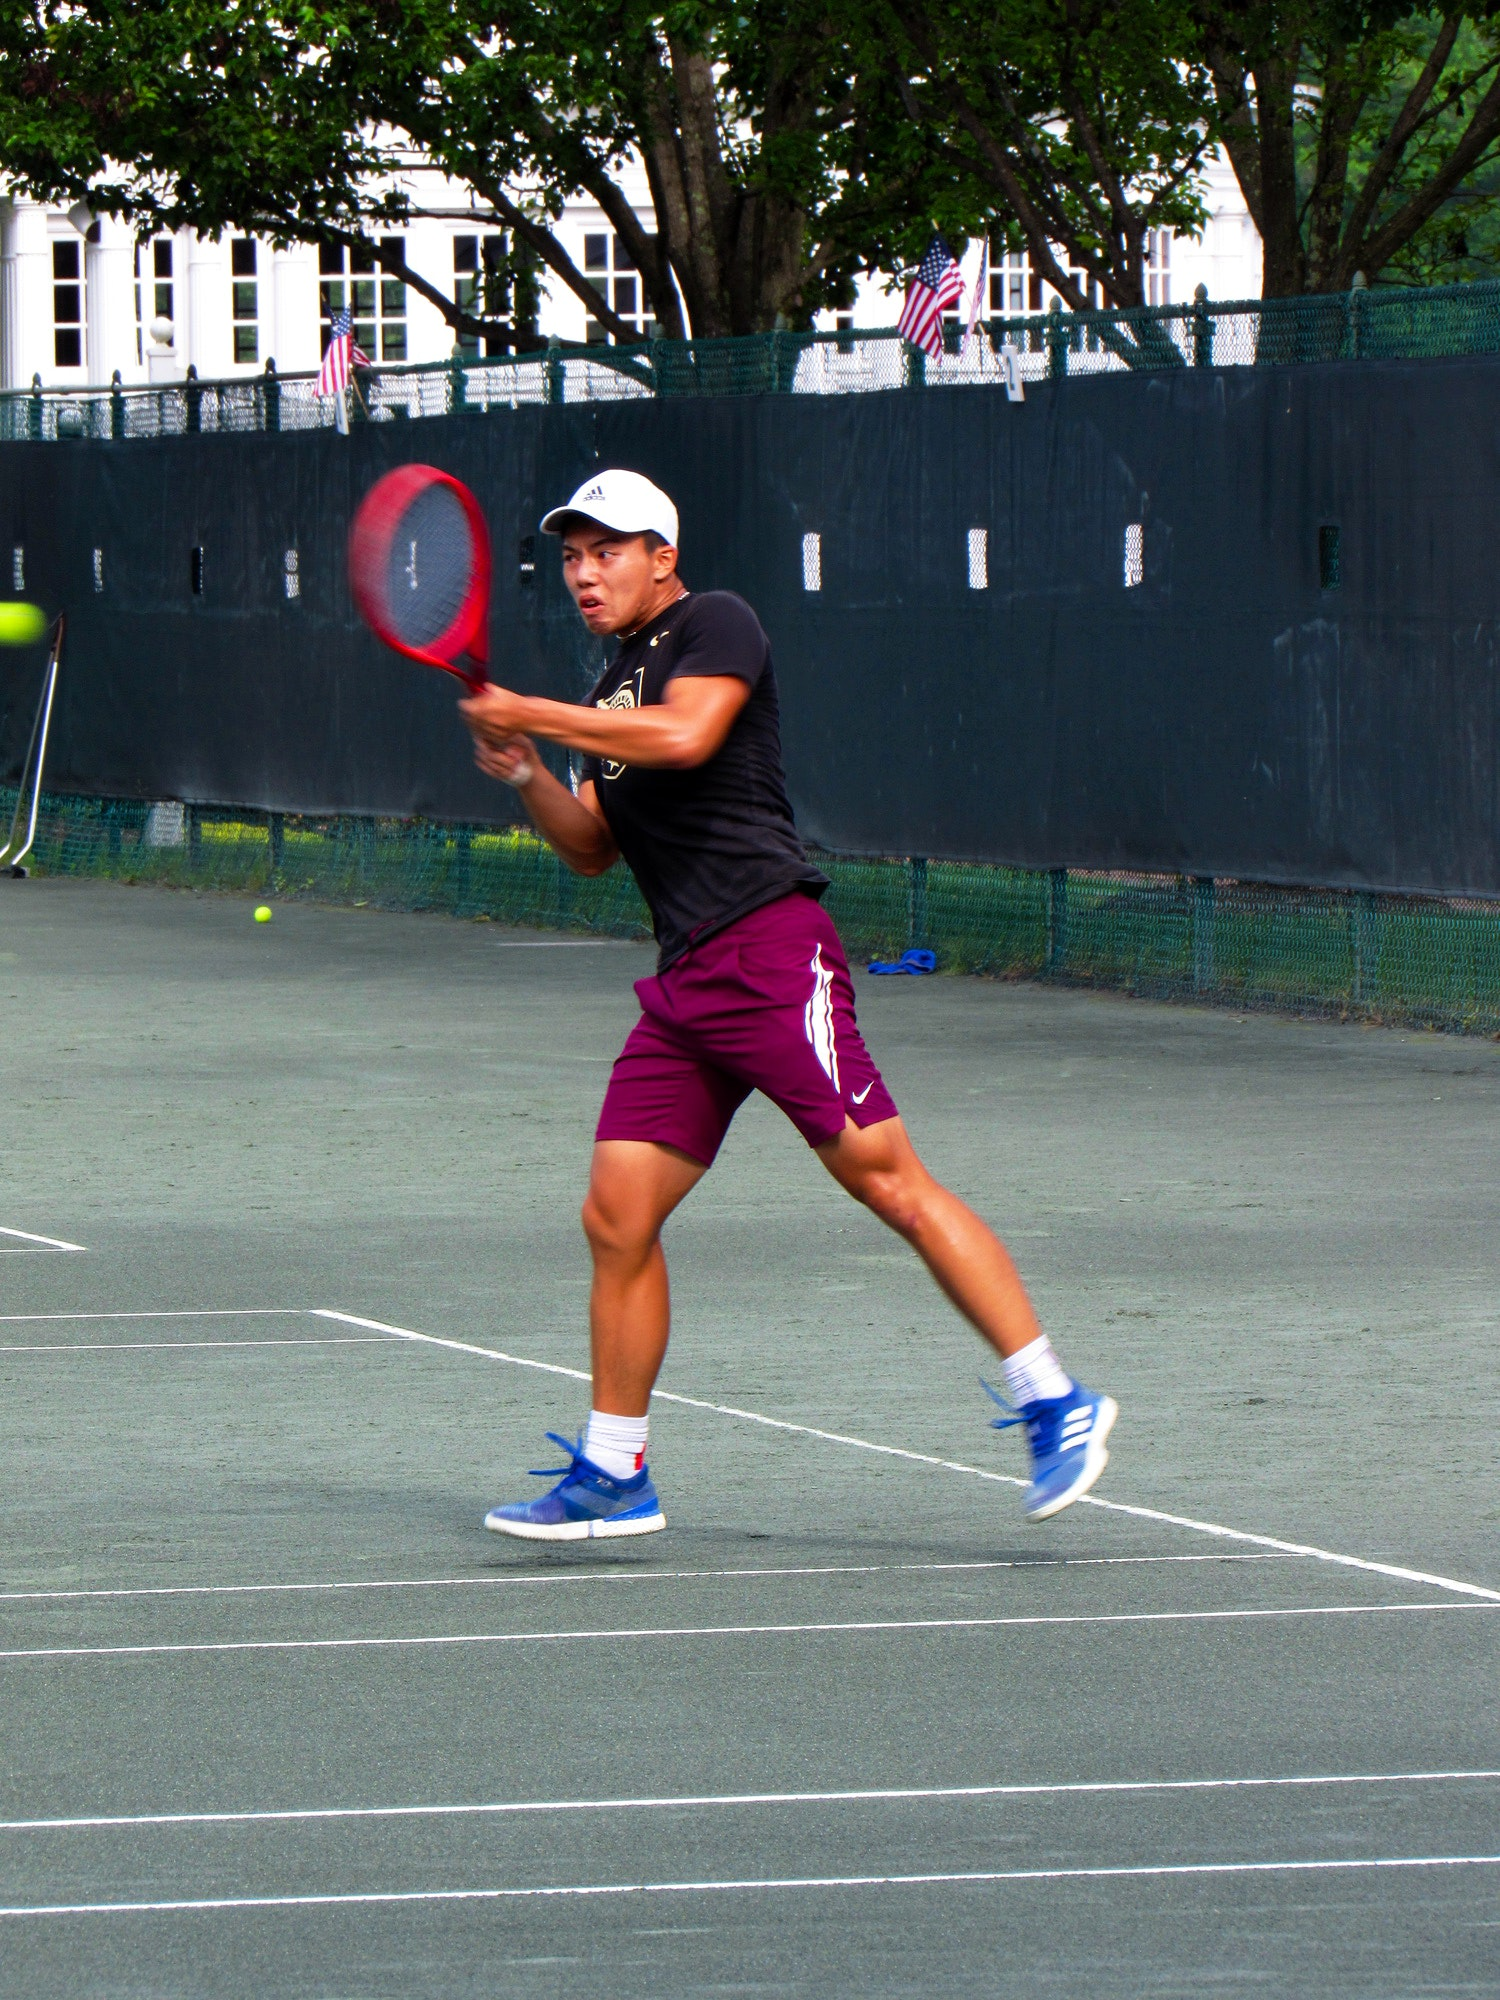 Wesley Z. teaches tennis lessons in Staten Island, NY